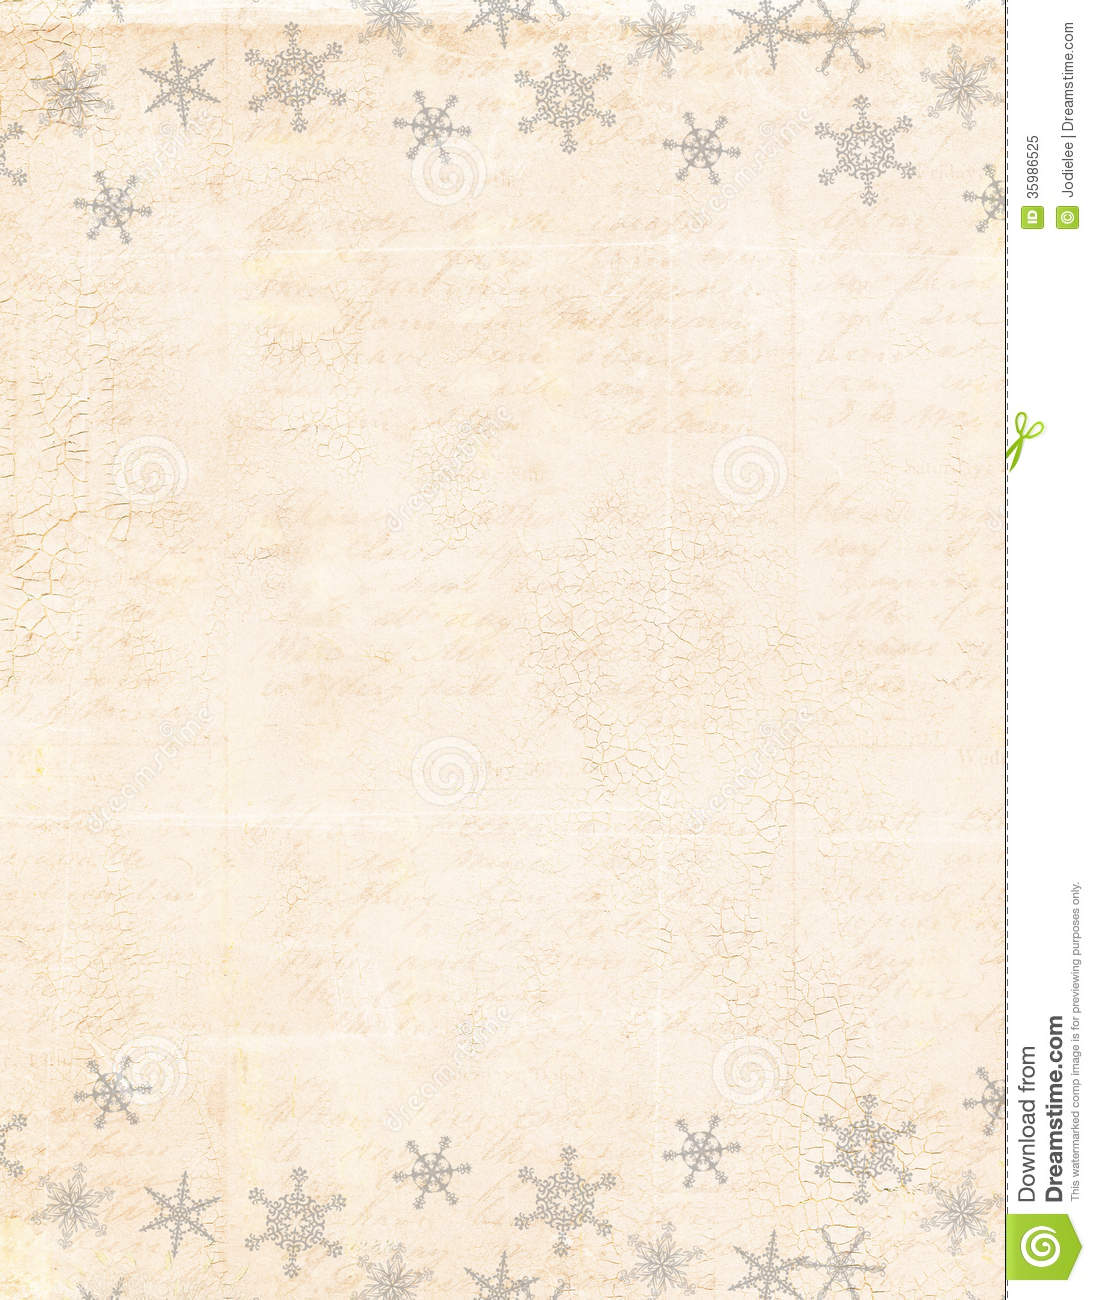 Printable Pictures Of Christmas Trees